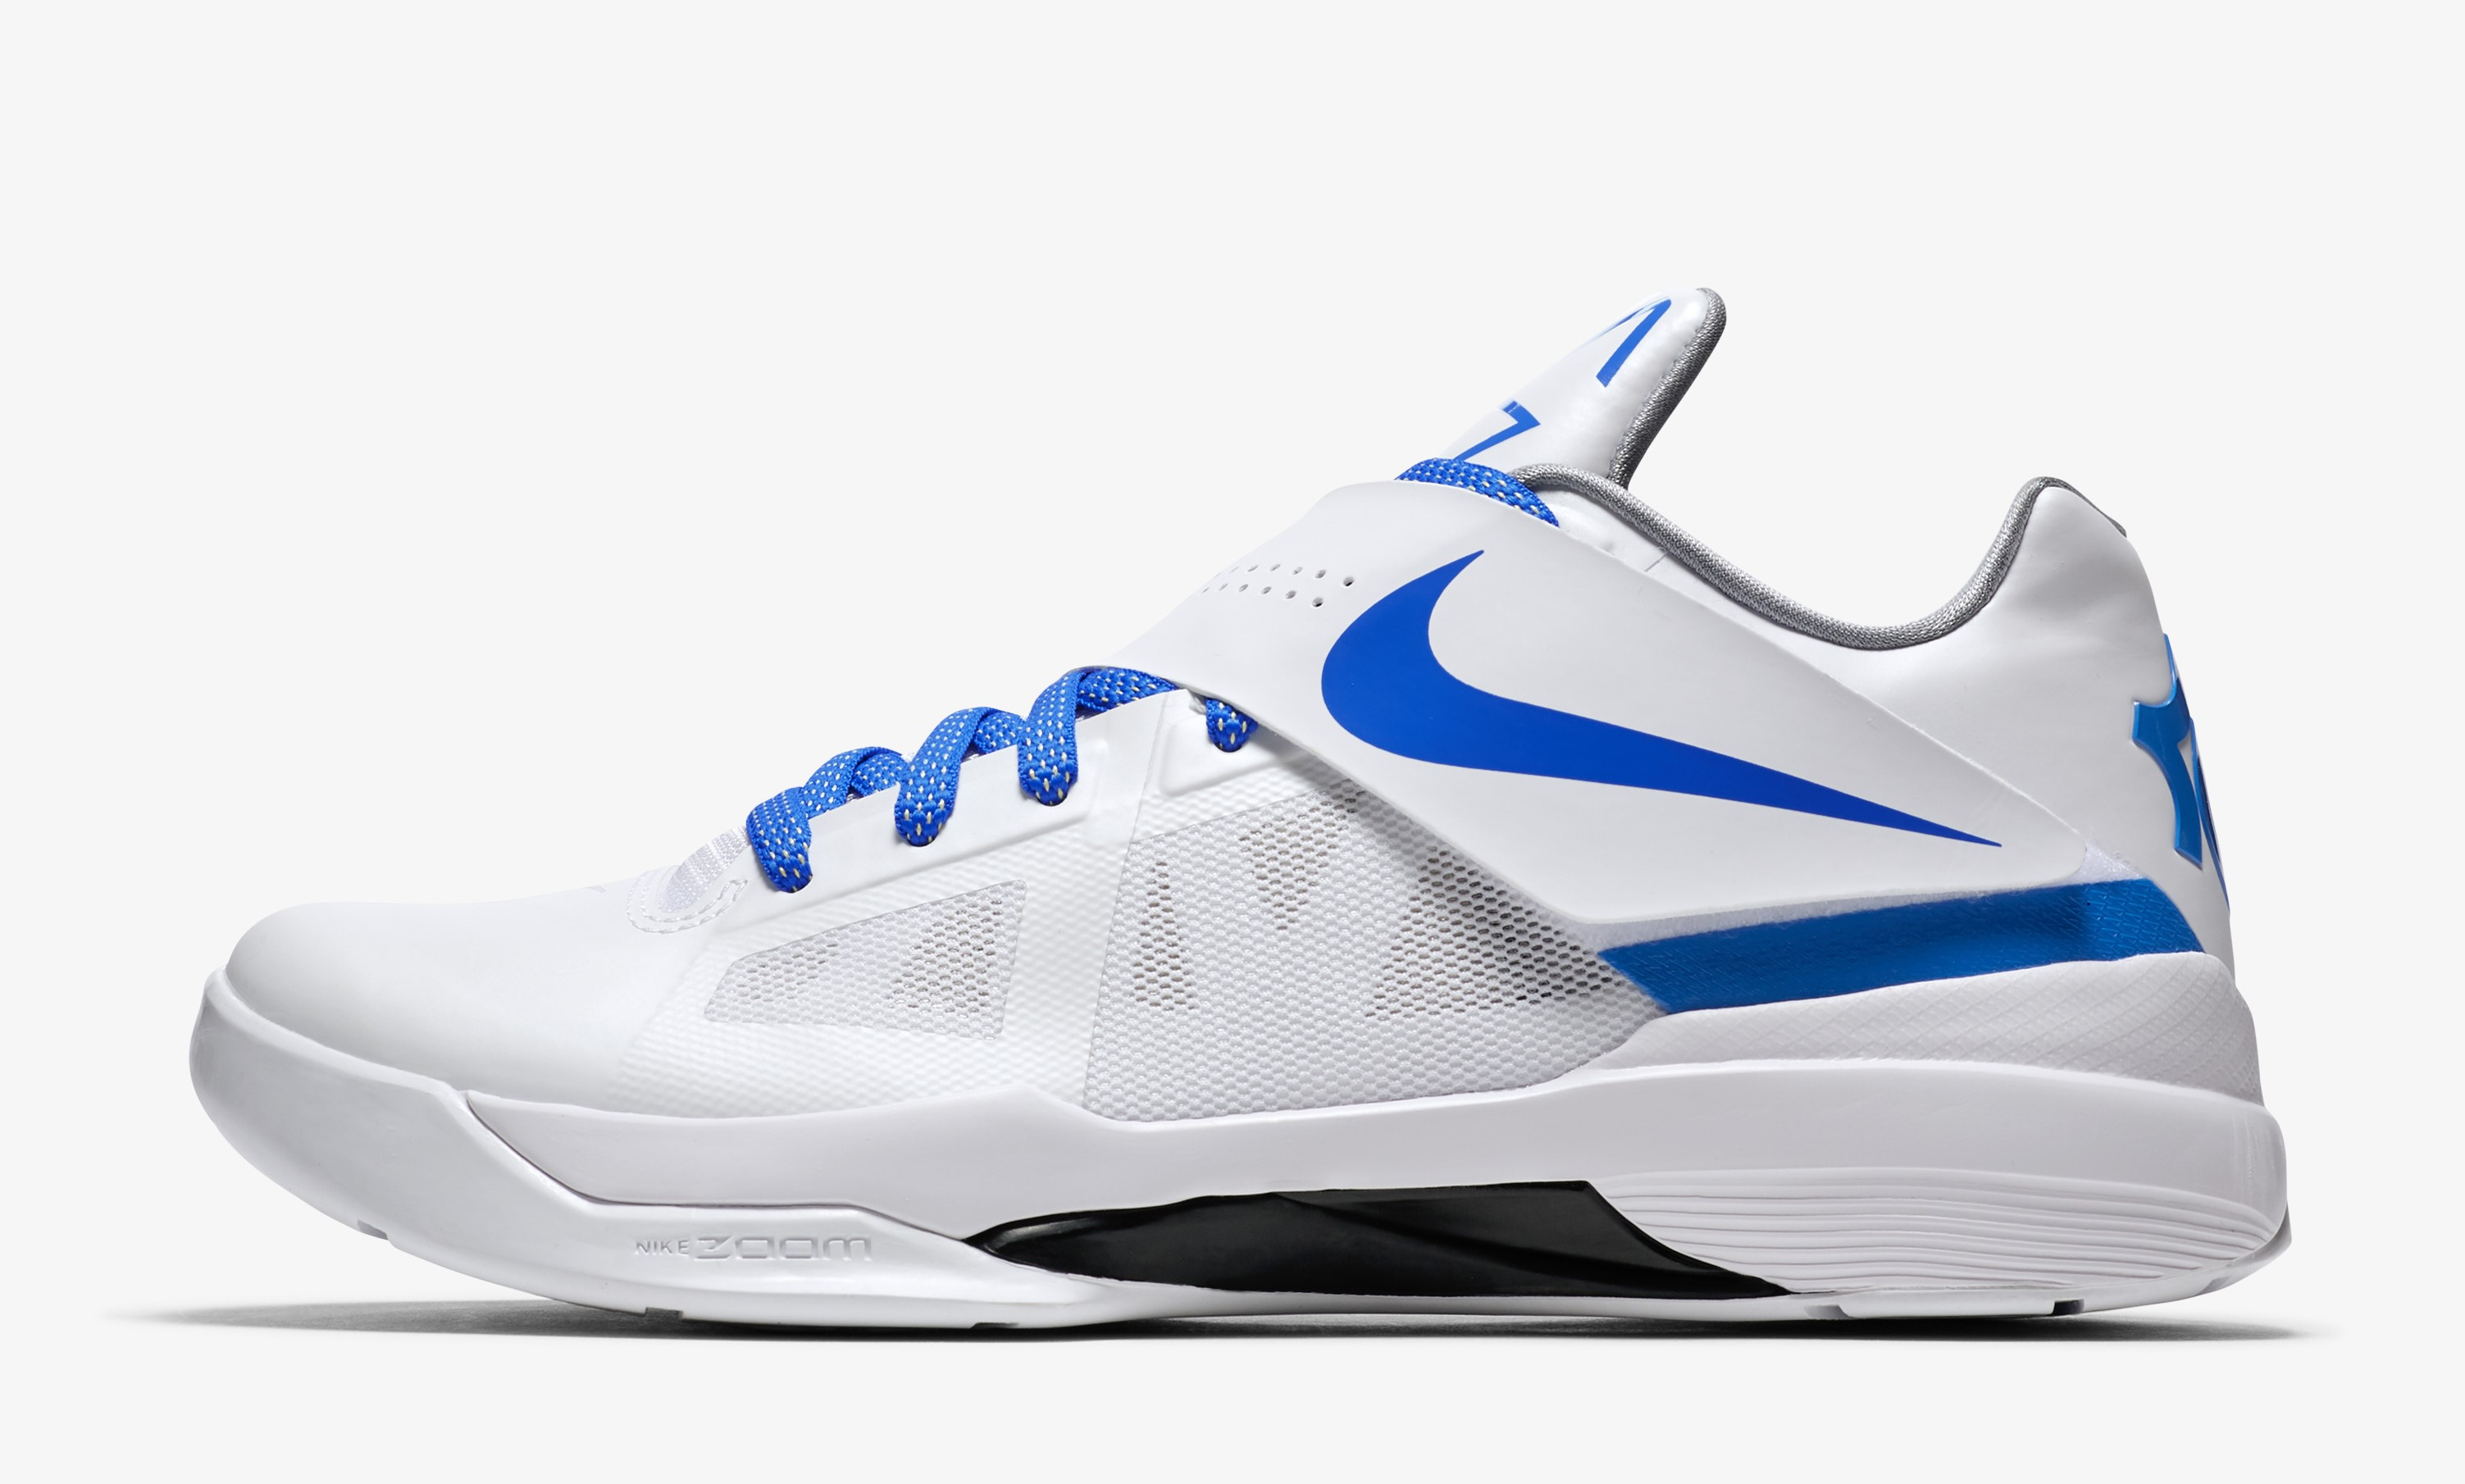 nike zoom kd 4 battle tested release date